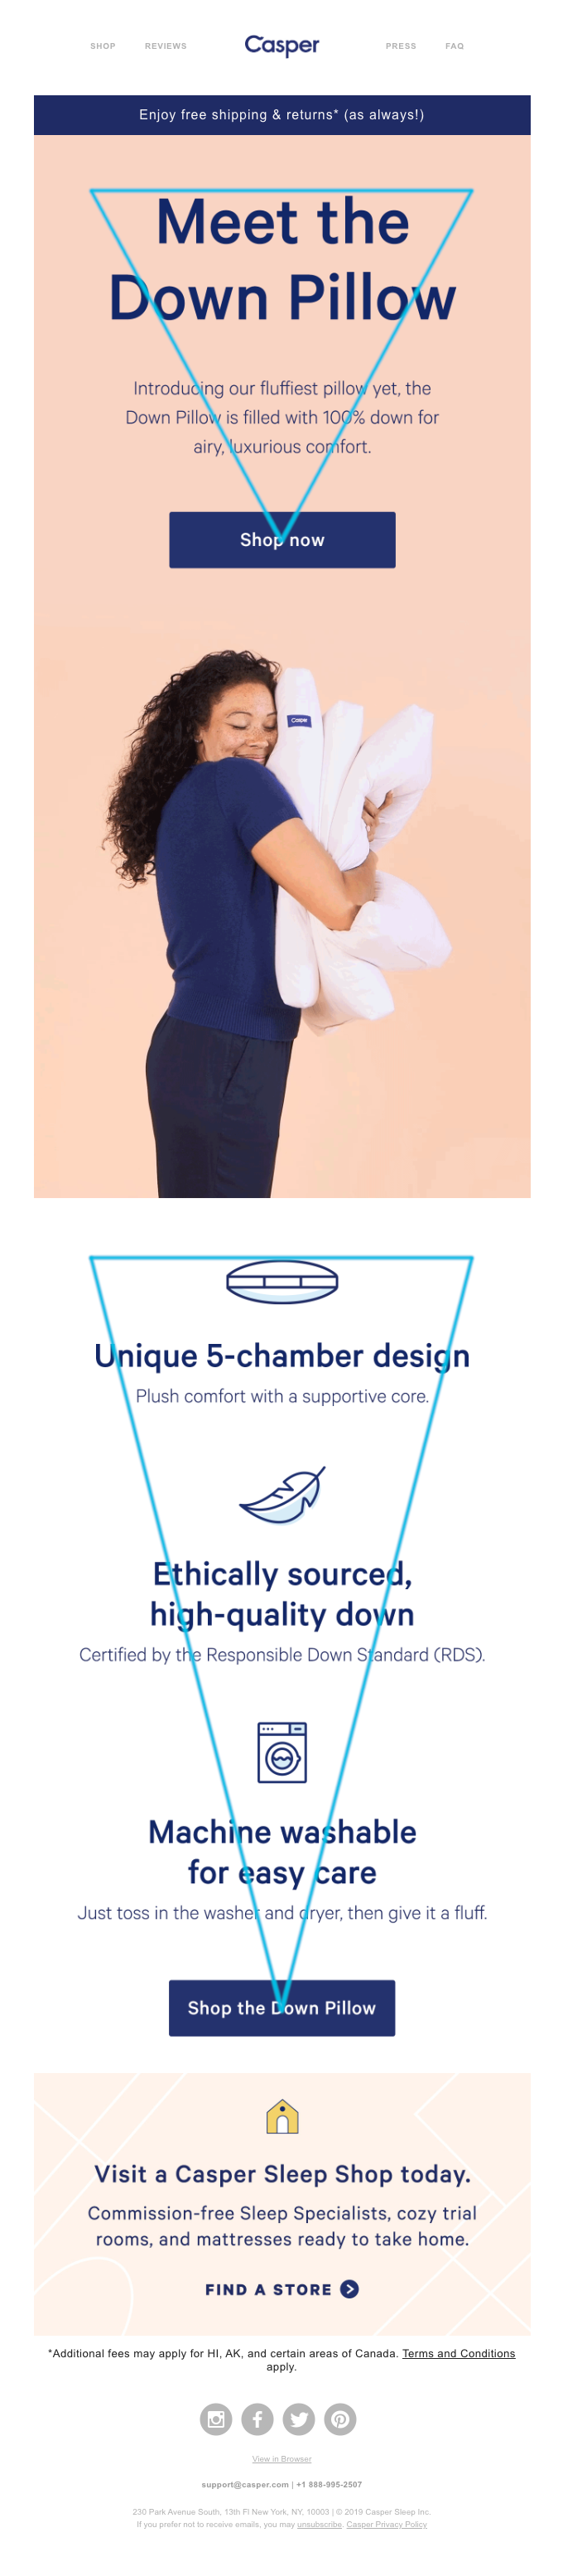 casper example for an inverted pyramid email design